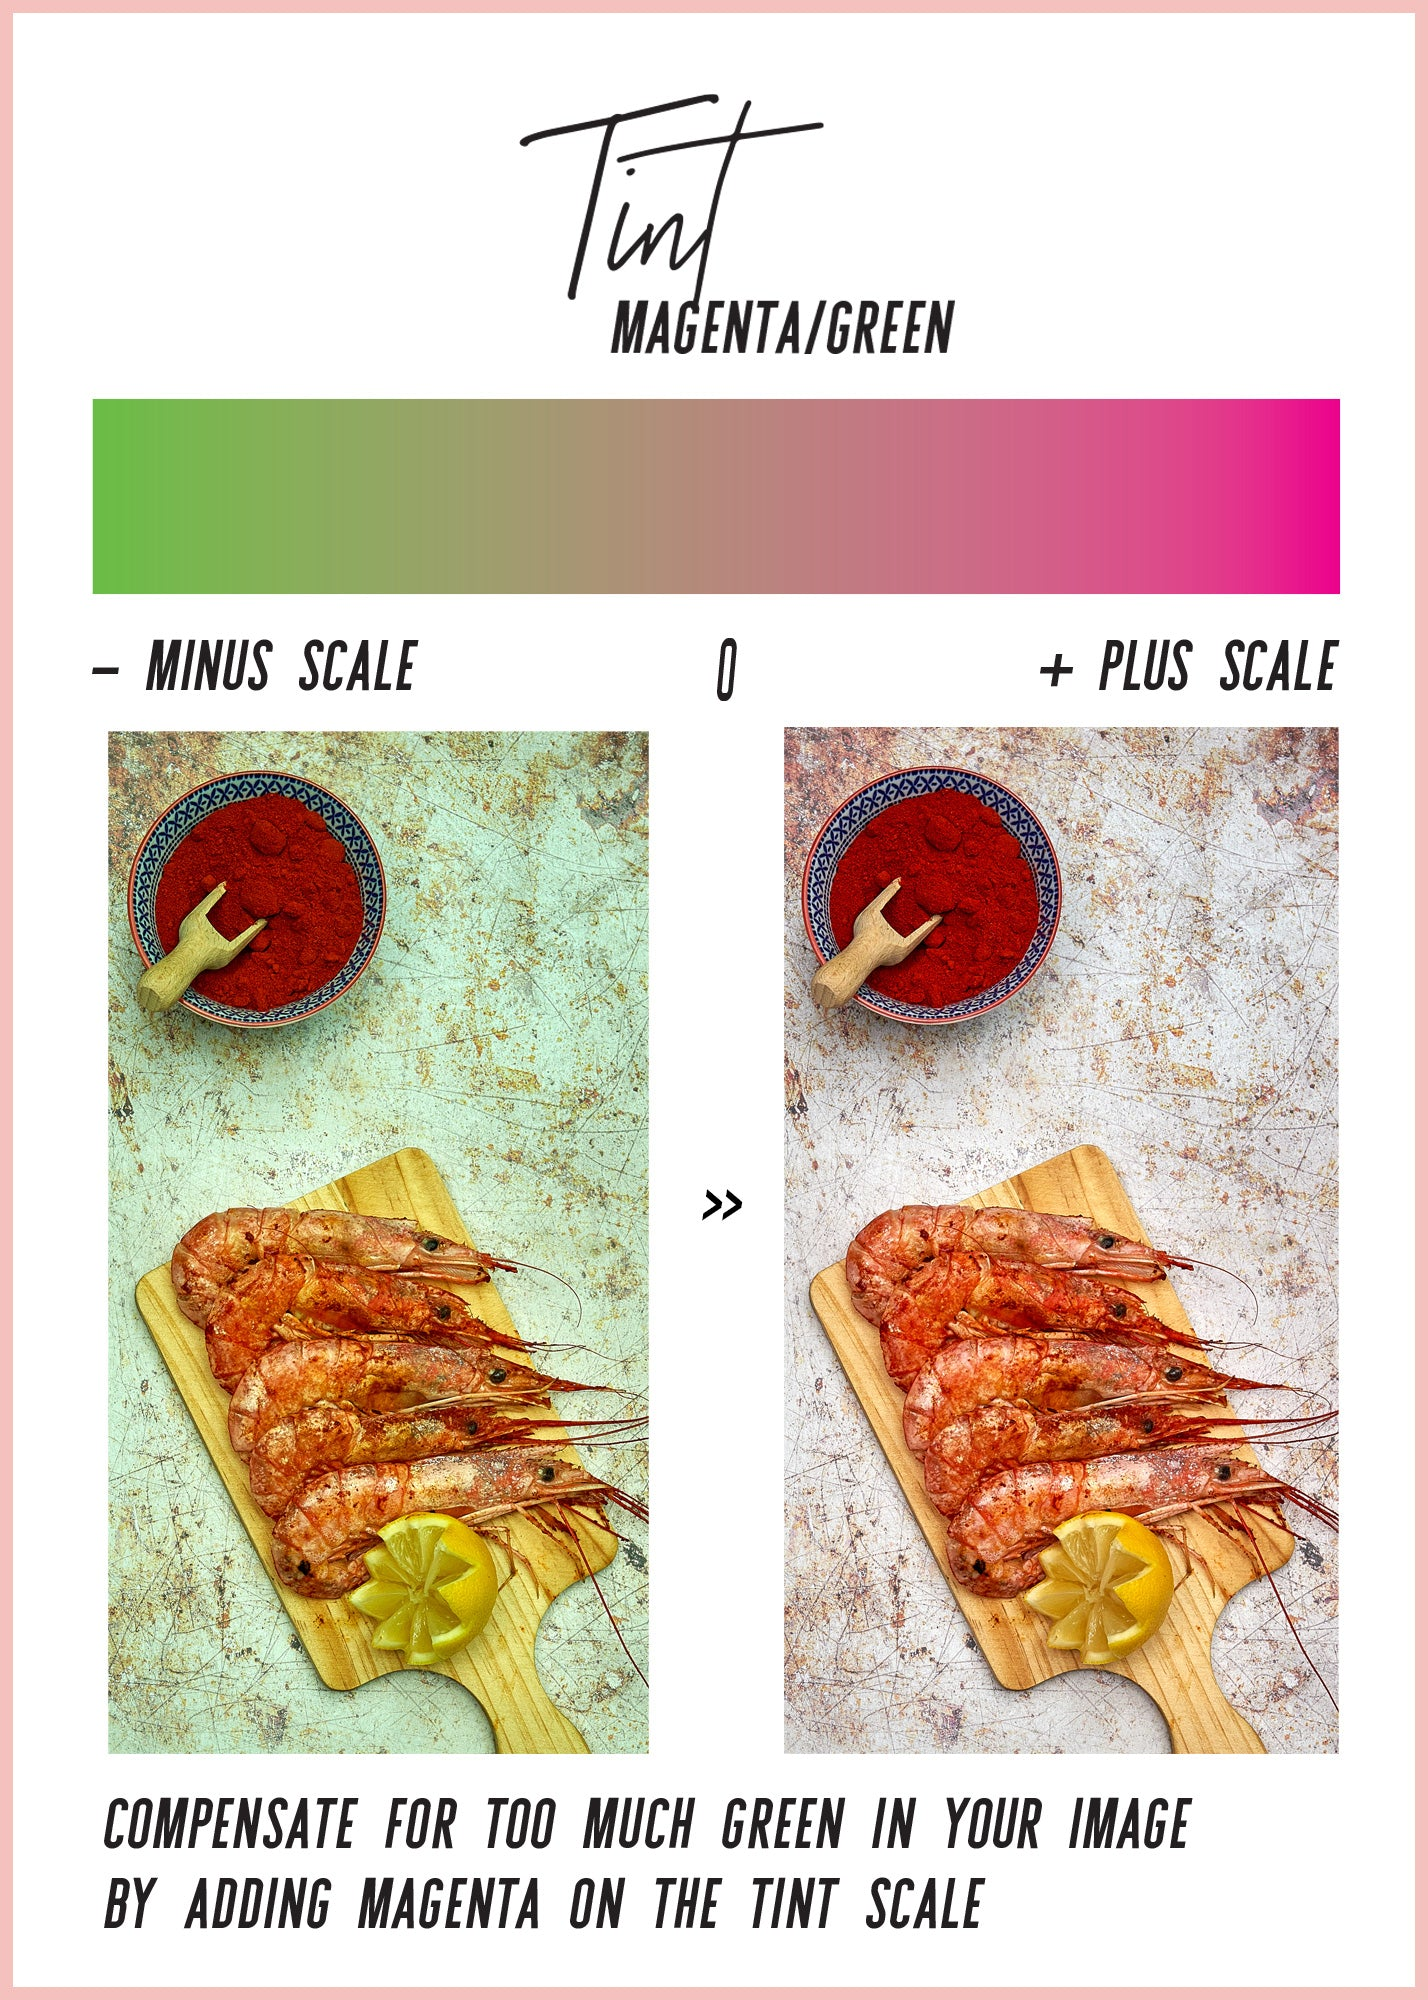 Tint scale for correction of colour casts in food and product photography